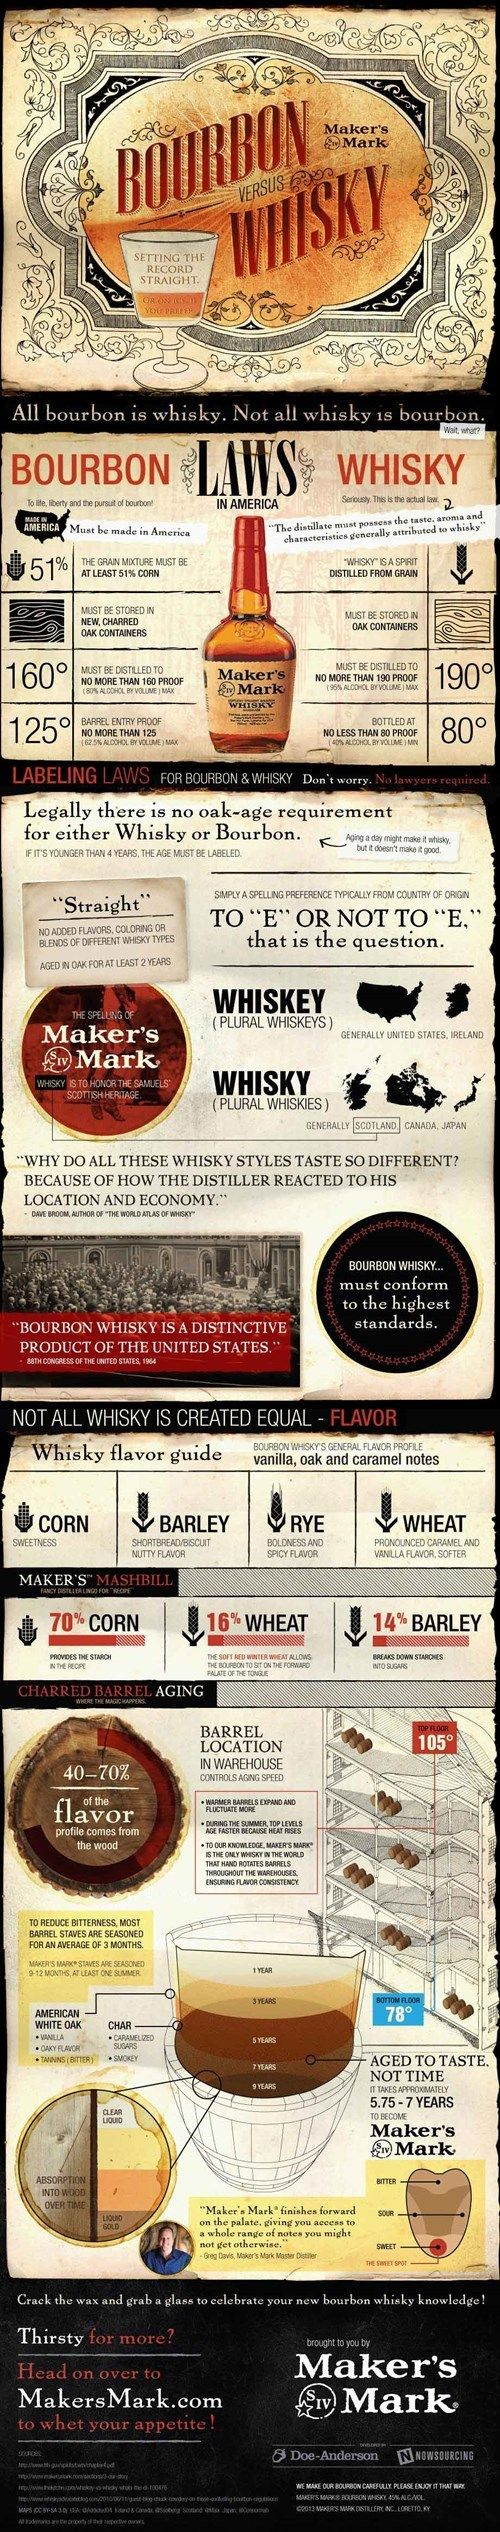 Solid info or ad for Maker's Mark?